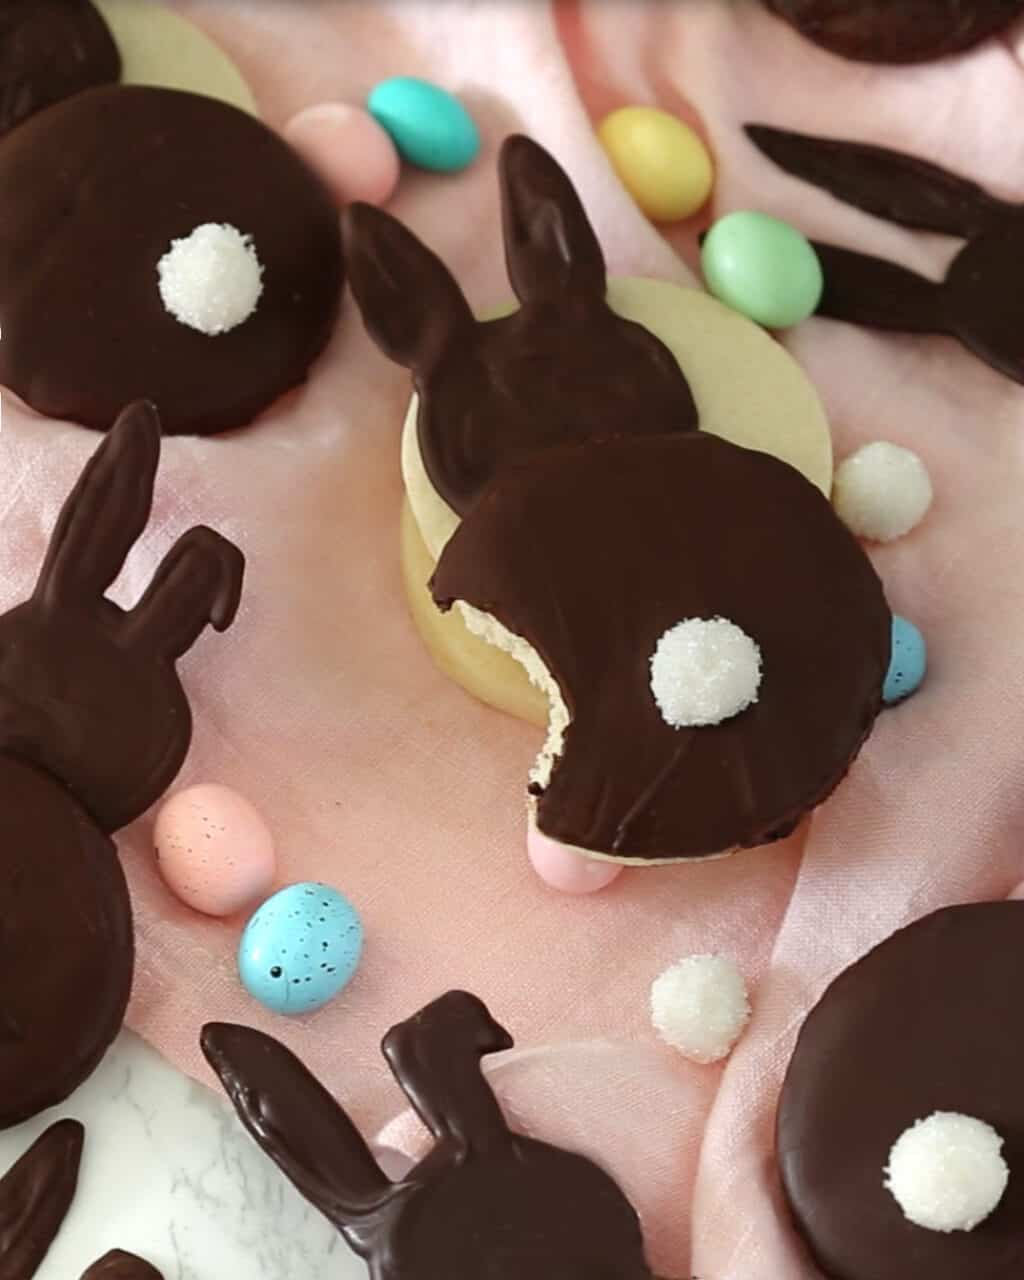 A photo of a chocolate coated bunny cookie with a bite taken out of it.